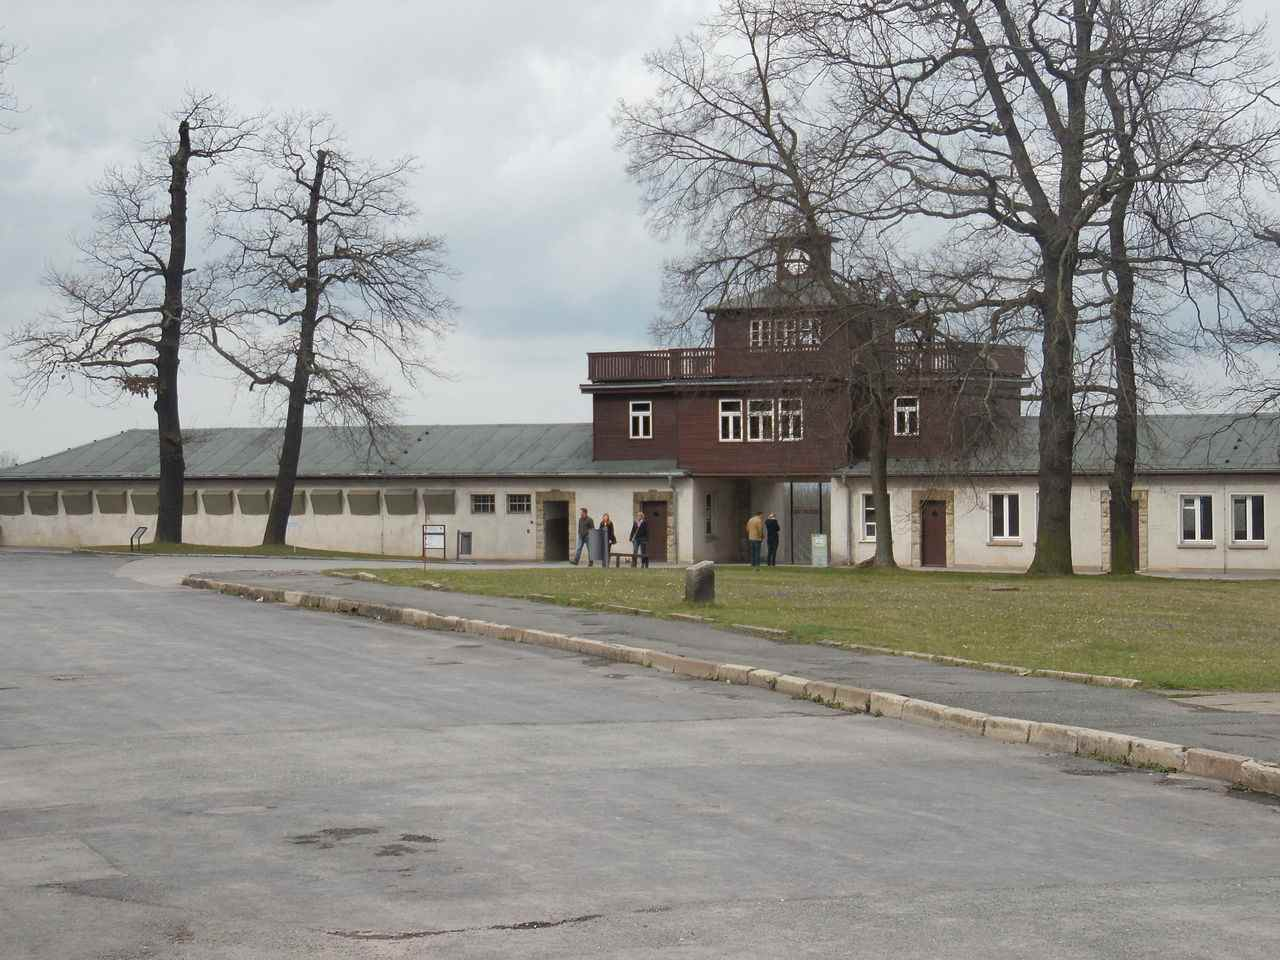 Buchenwald concentration camp, Weimar, Germany